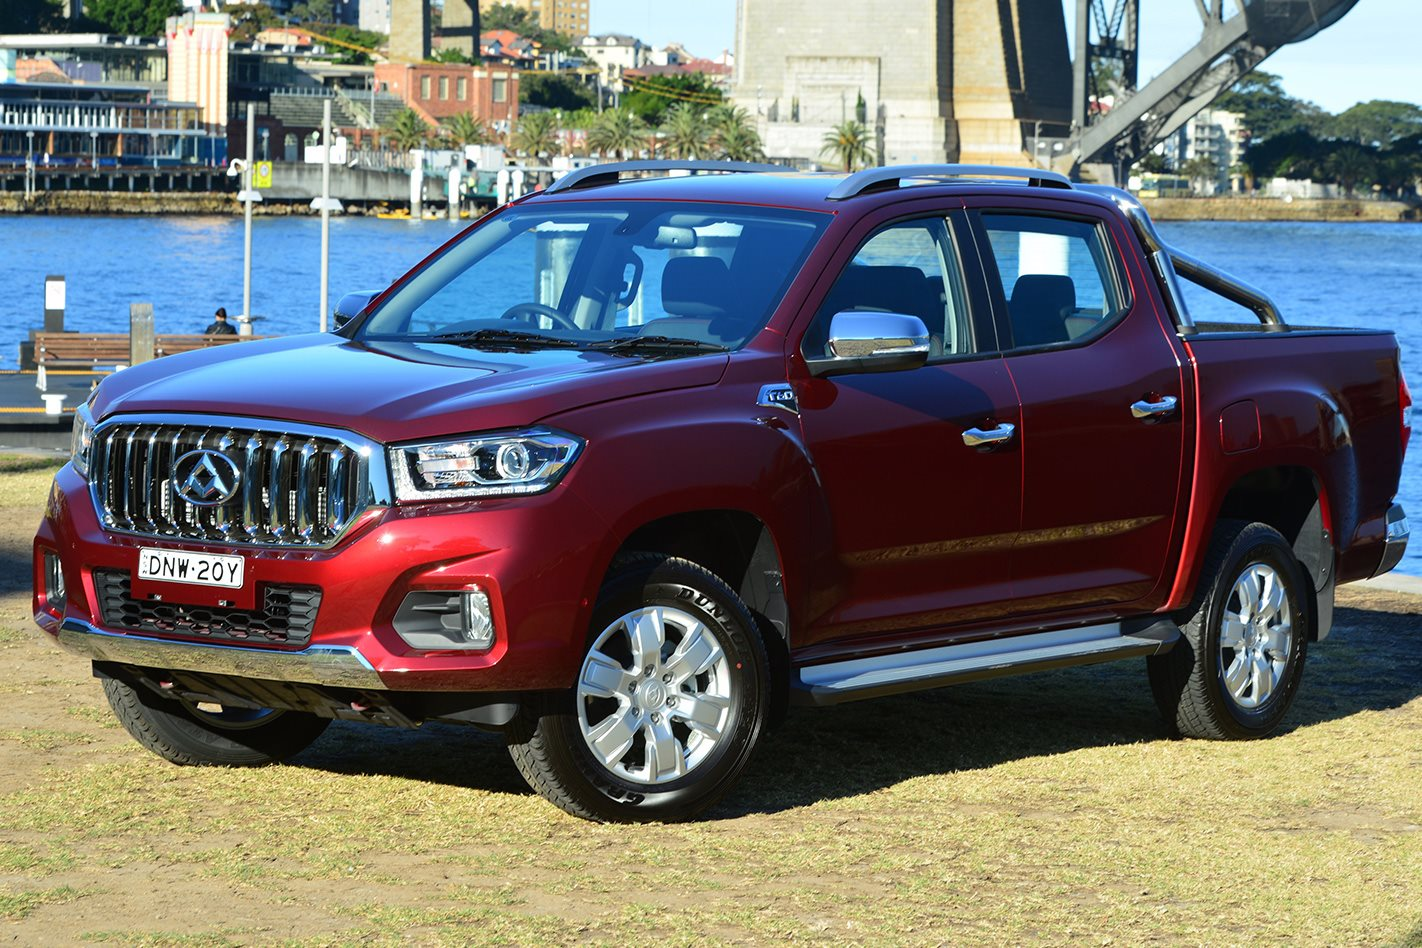 LDV T60 ute on sale from October 1